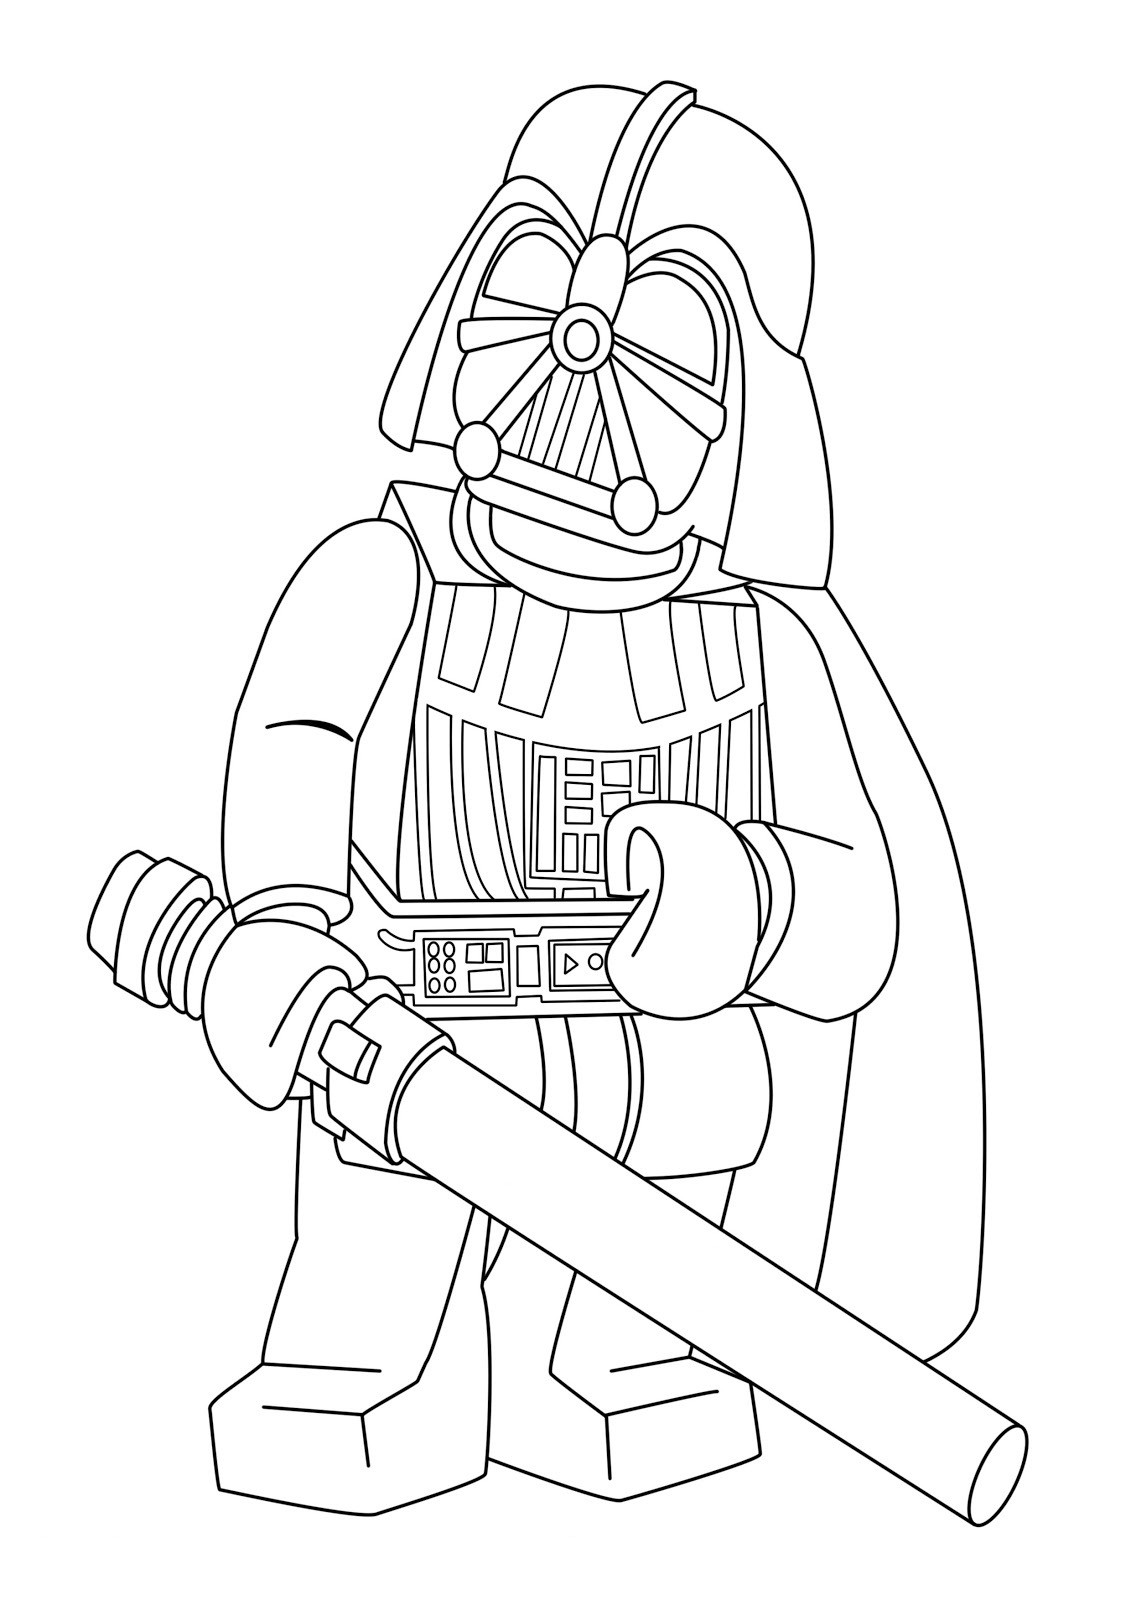 Lego Star Wars Coloring Pages To Print  Star Wars Coloring Pages Free Printable Star Wars